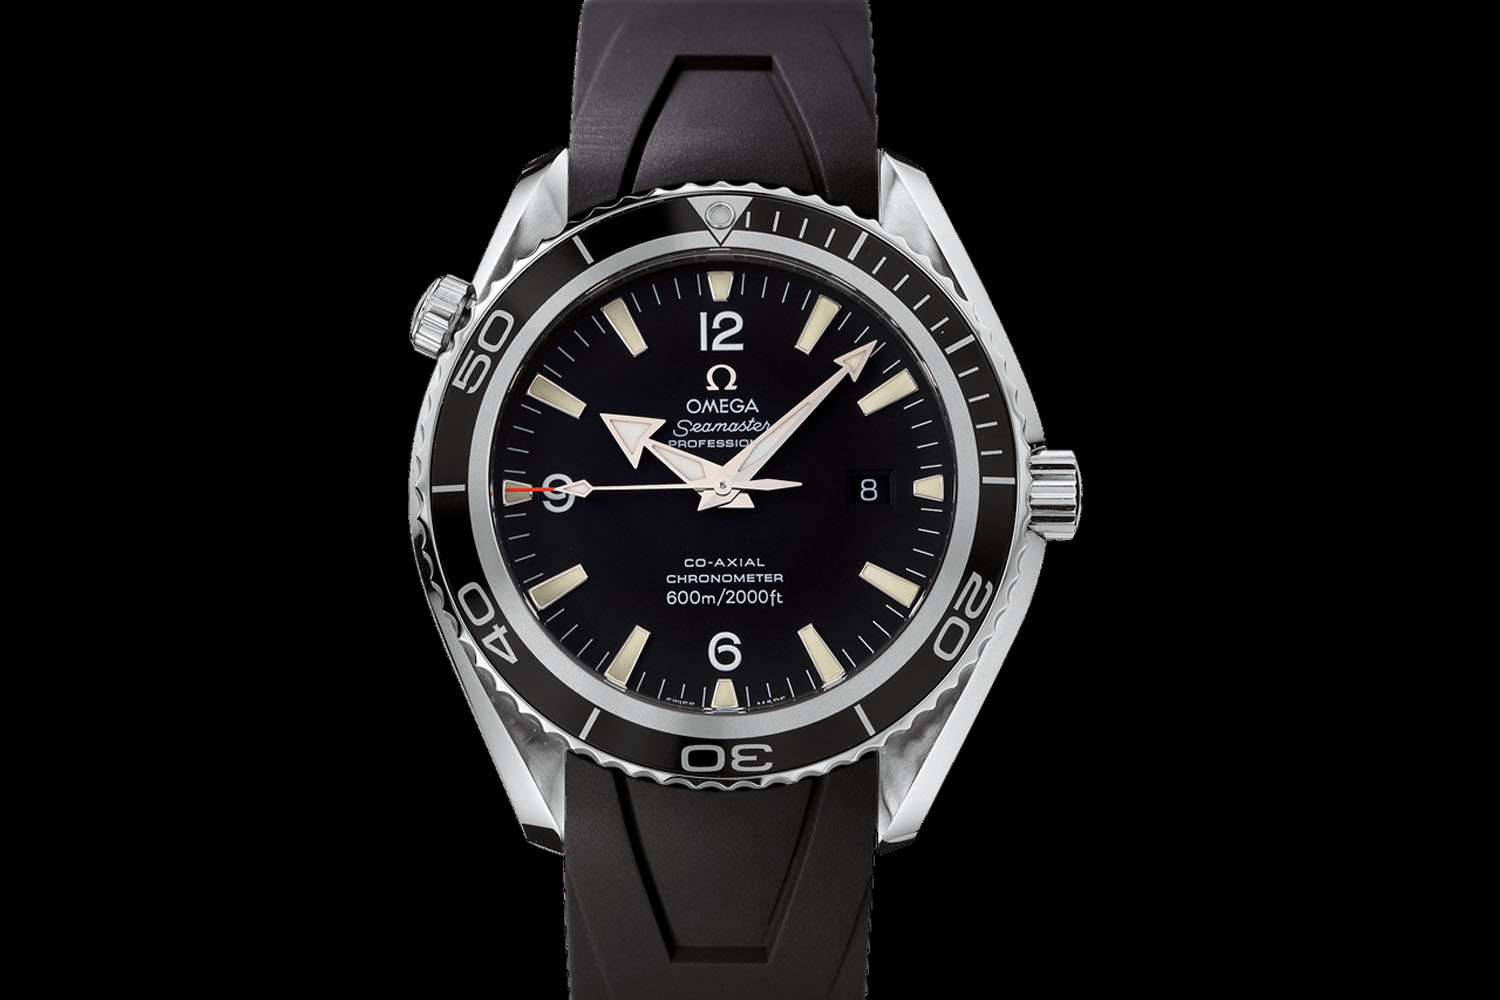 Omega Seamaster PO 600m 45.5mm 007 Casino Royal